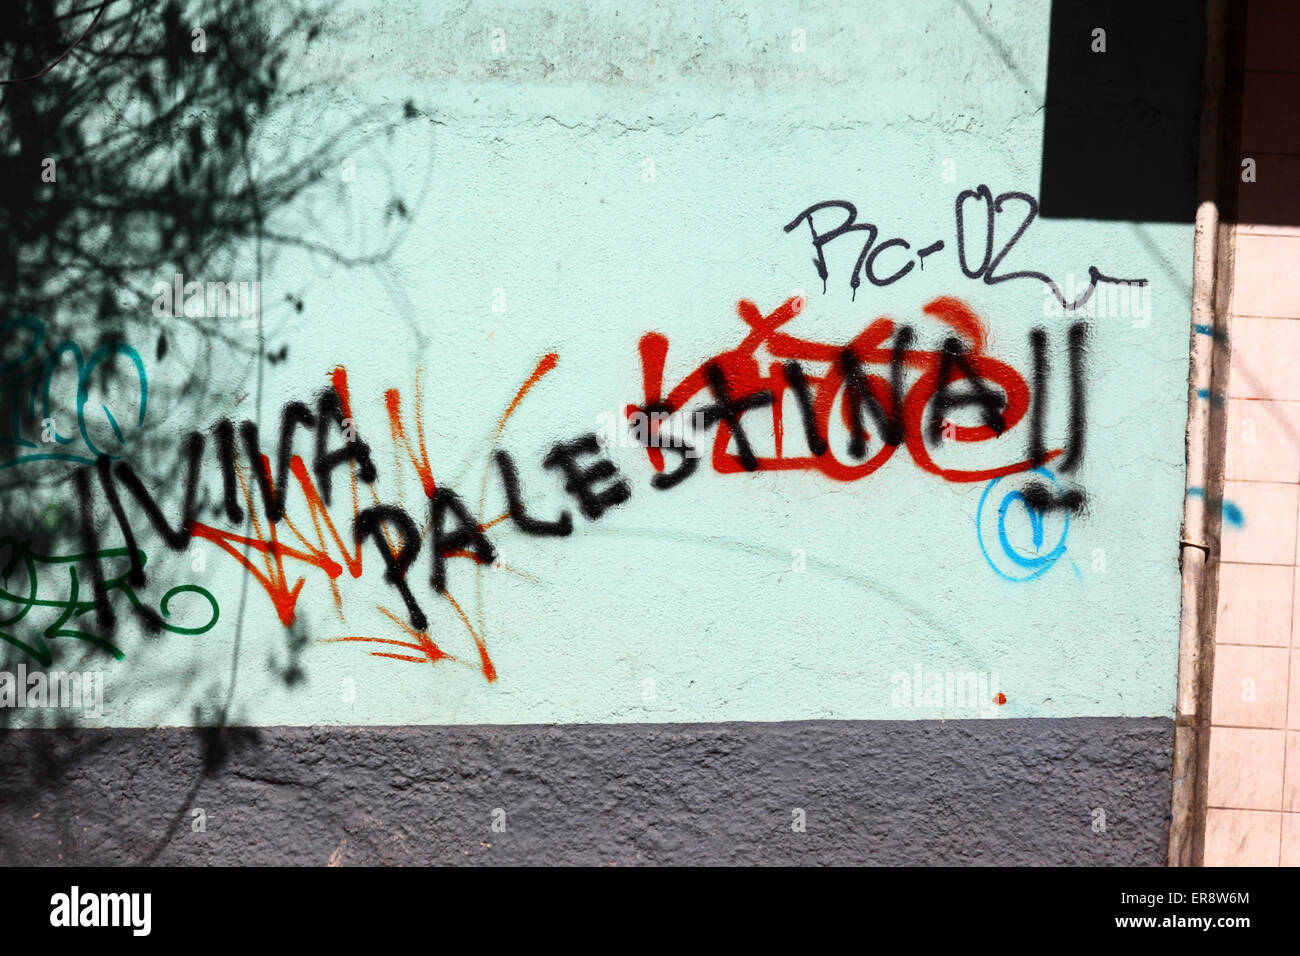 Viva Palestina / Long live Palestine graffiti on a wall in protest against Israeli military offensive in Gaza, La - Stock Image